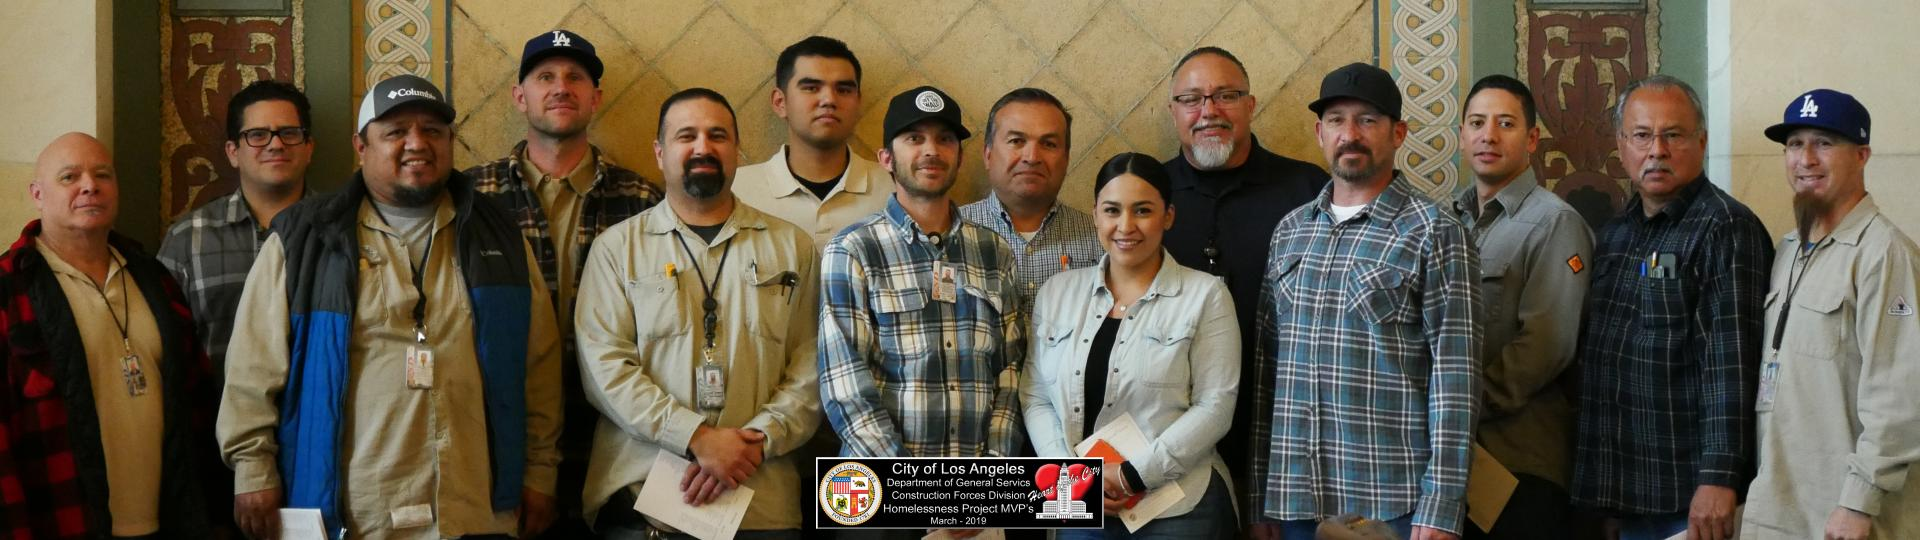 homelessness project mvp construction forces